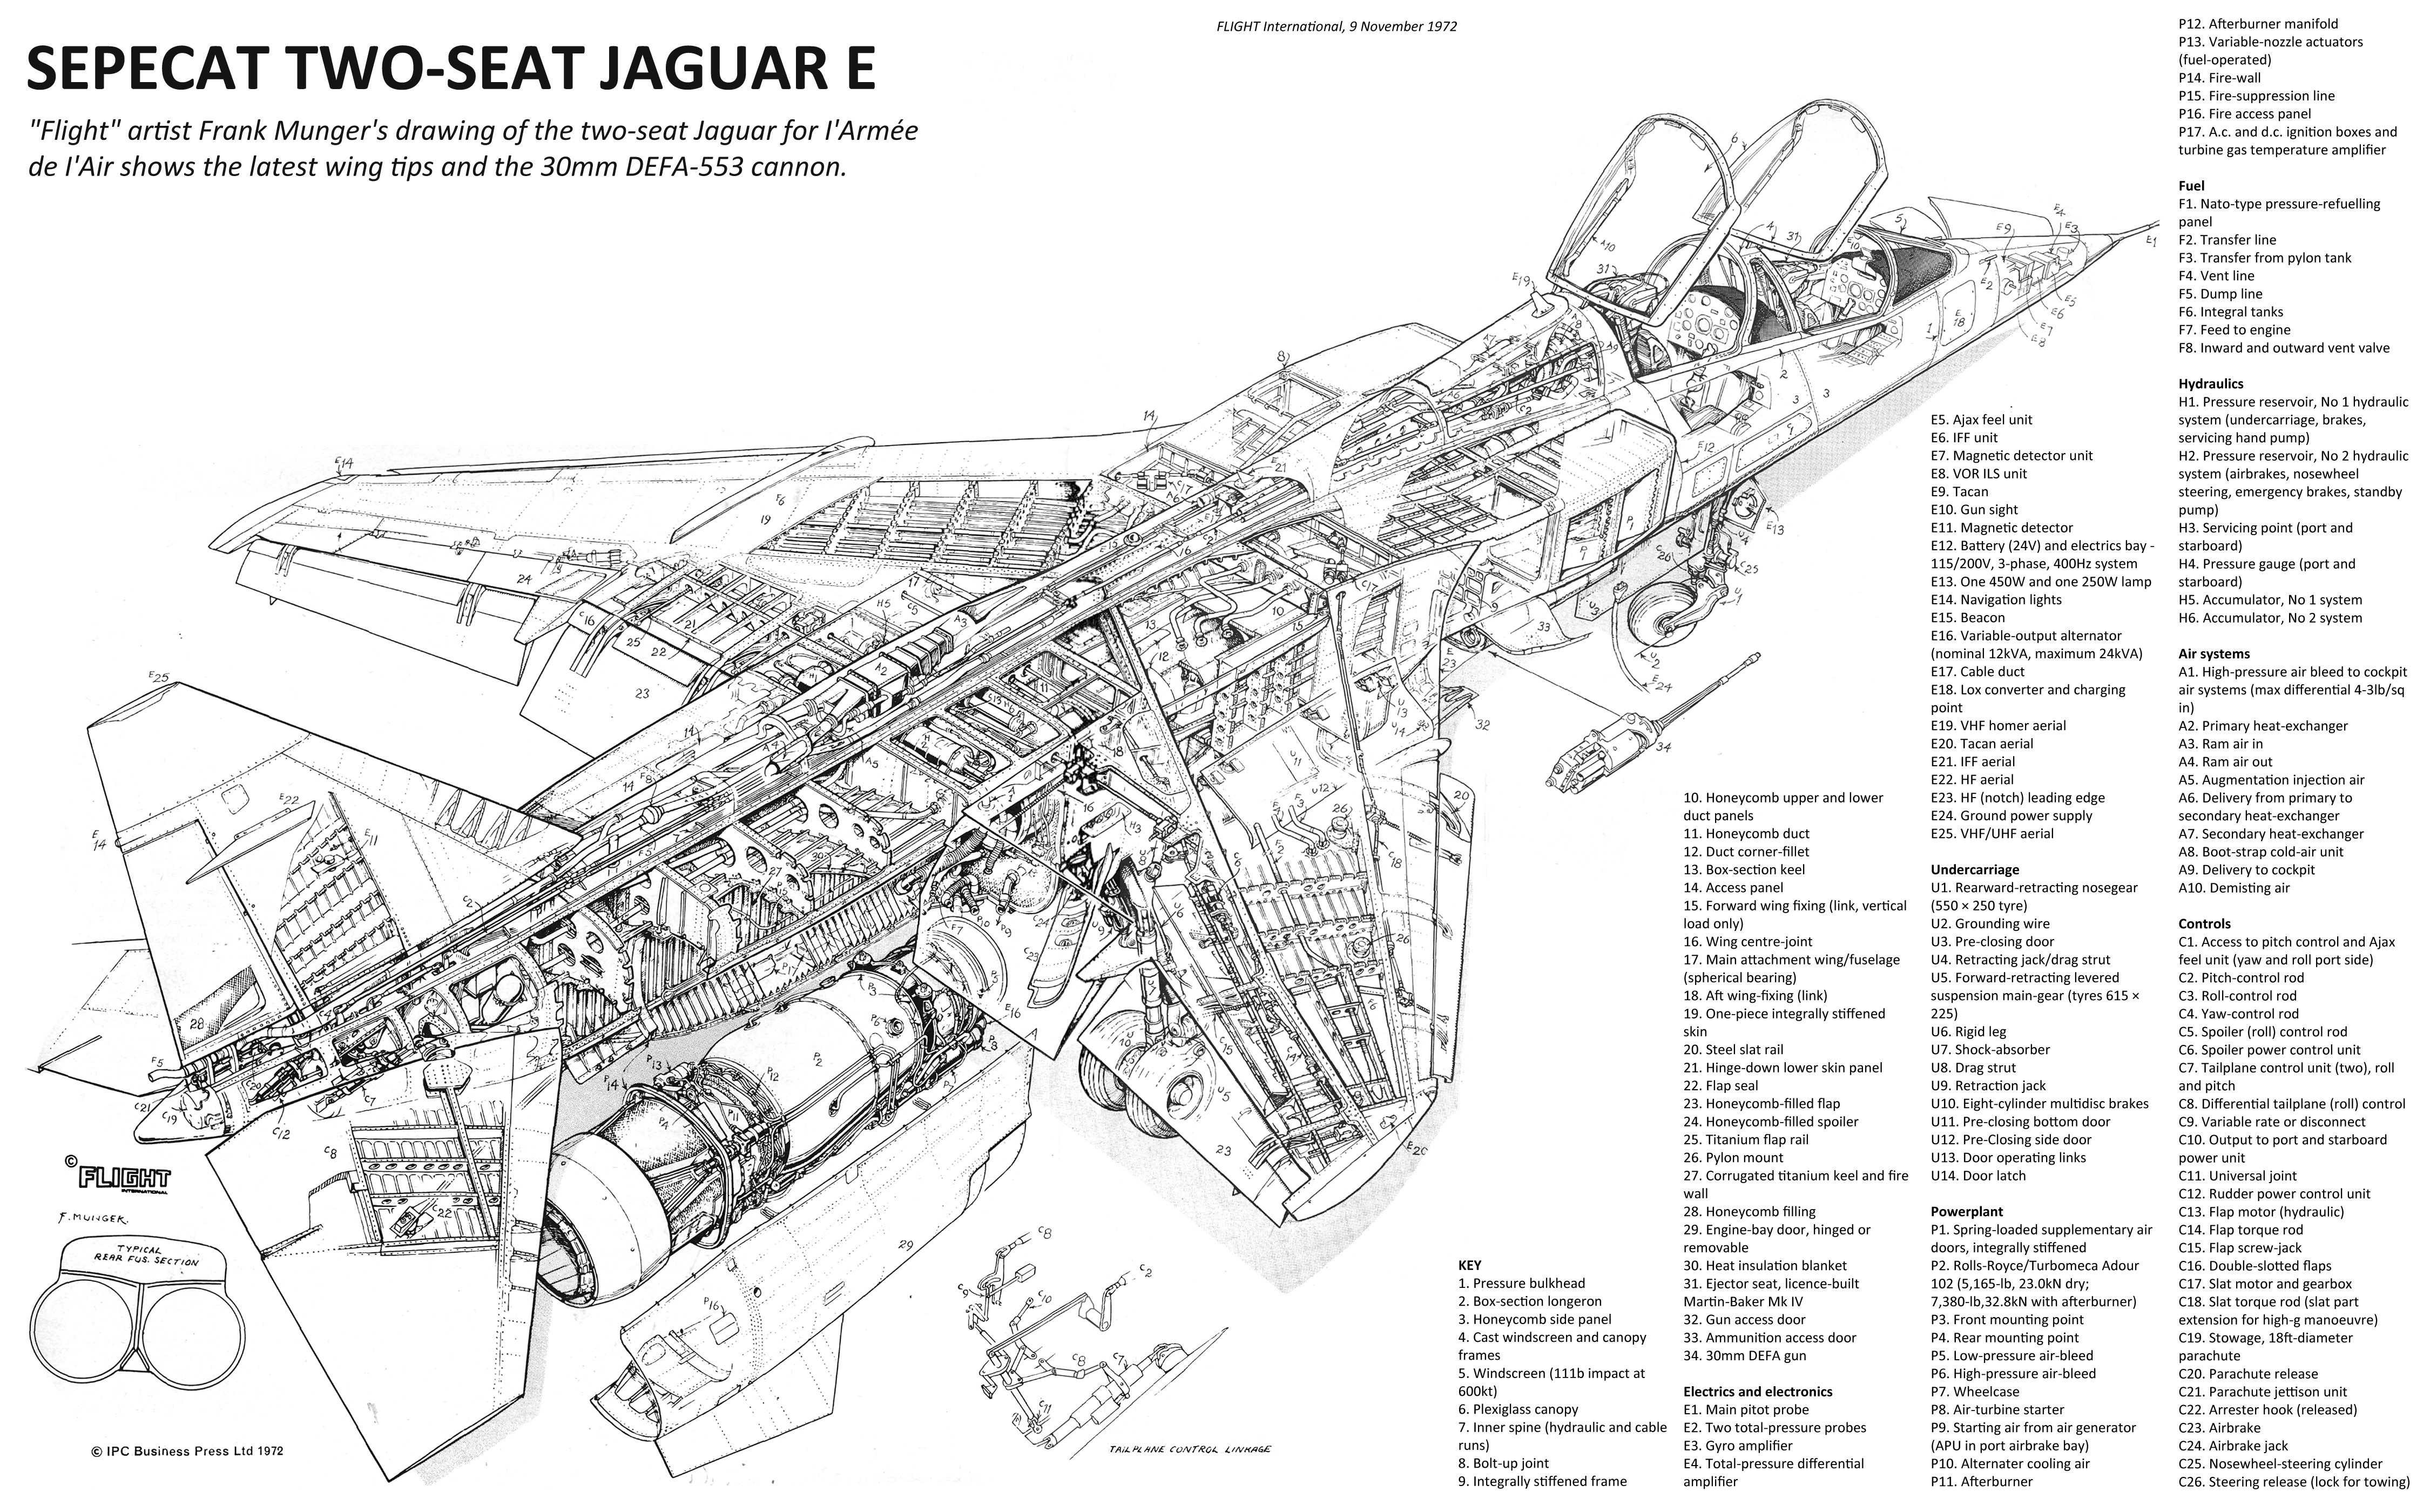 JAGUAR ENGINE DIAGRAM CUTAWAY - Auto Electrical Wiring Diagram on ariel atom v8 engine diagram, coyote engine diagram, jaguar xk6 engine, geo engine diagram, gmc engine diagram, supercharger diagram, mustang 5.0 engine diagram, smart engine diagram, jaguar electrical diagrams, jaguar xf 5.0 v8, jaguar s type timing chain, cadillac engine diagram, jaguar wiring, jaguar aj-v8 engine, kymco engine diagram, jaguar aj-v6 engine, cat engine diagram, 2004 xj8 engine diagram, rover v8 engine, mitsubishi 3.0 v6 engine diagram, plymouth engine diagram, titan engine diagram, skoda engine diagram, evinrude engine diagram,